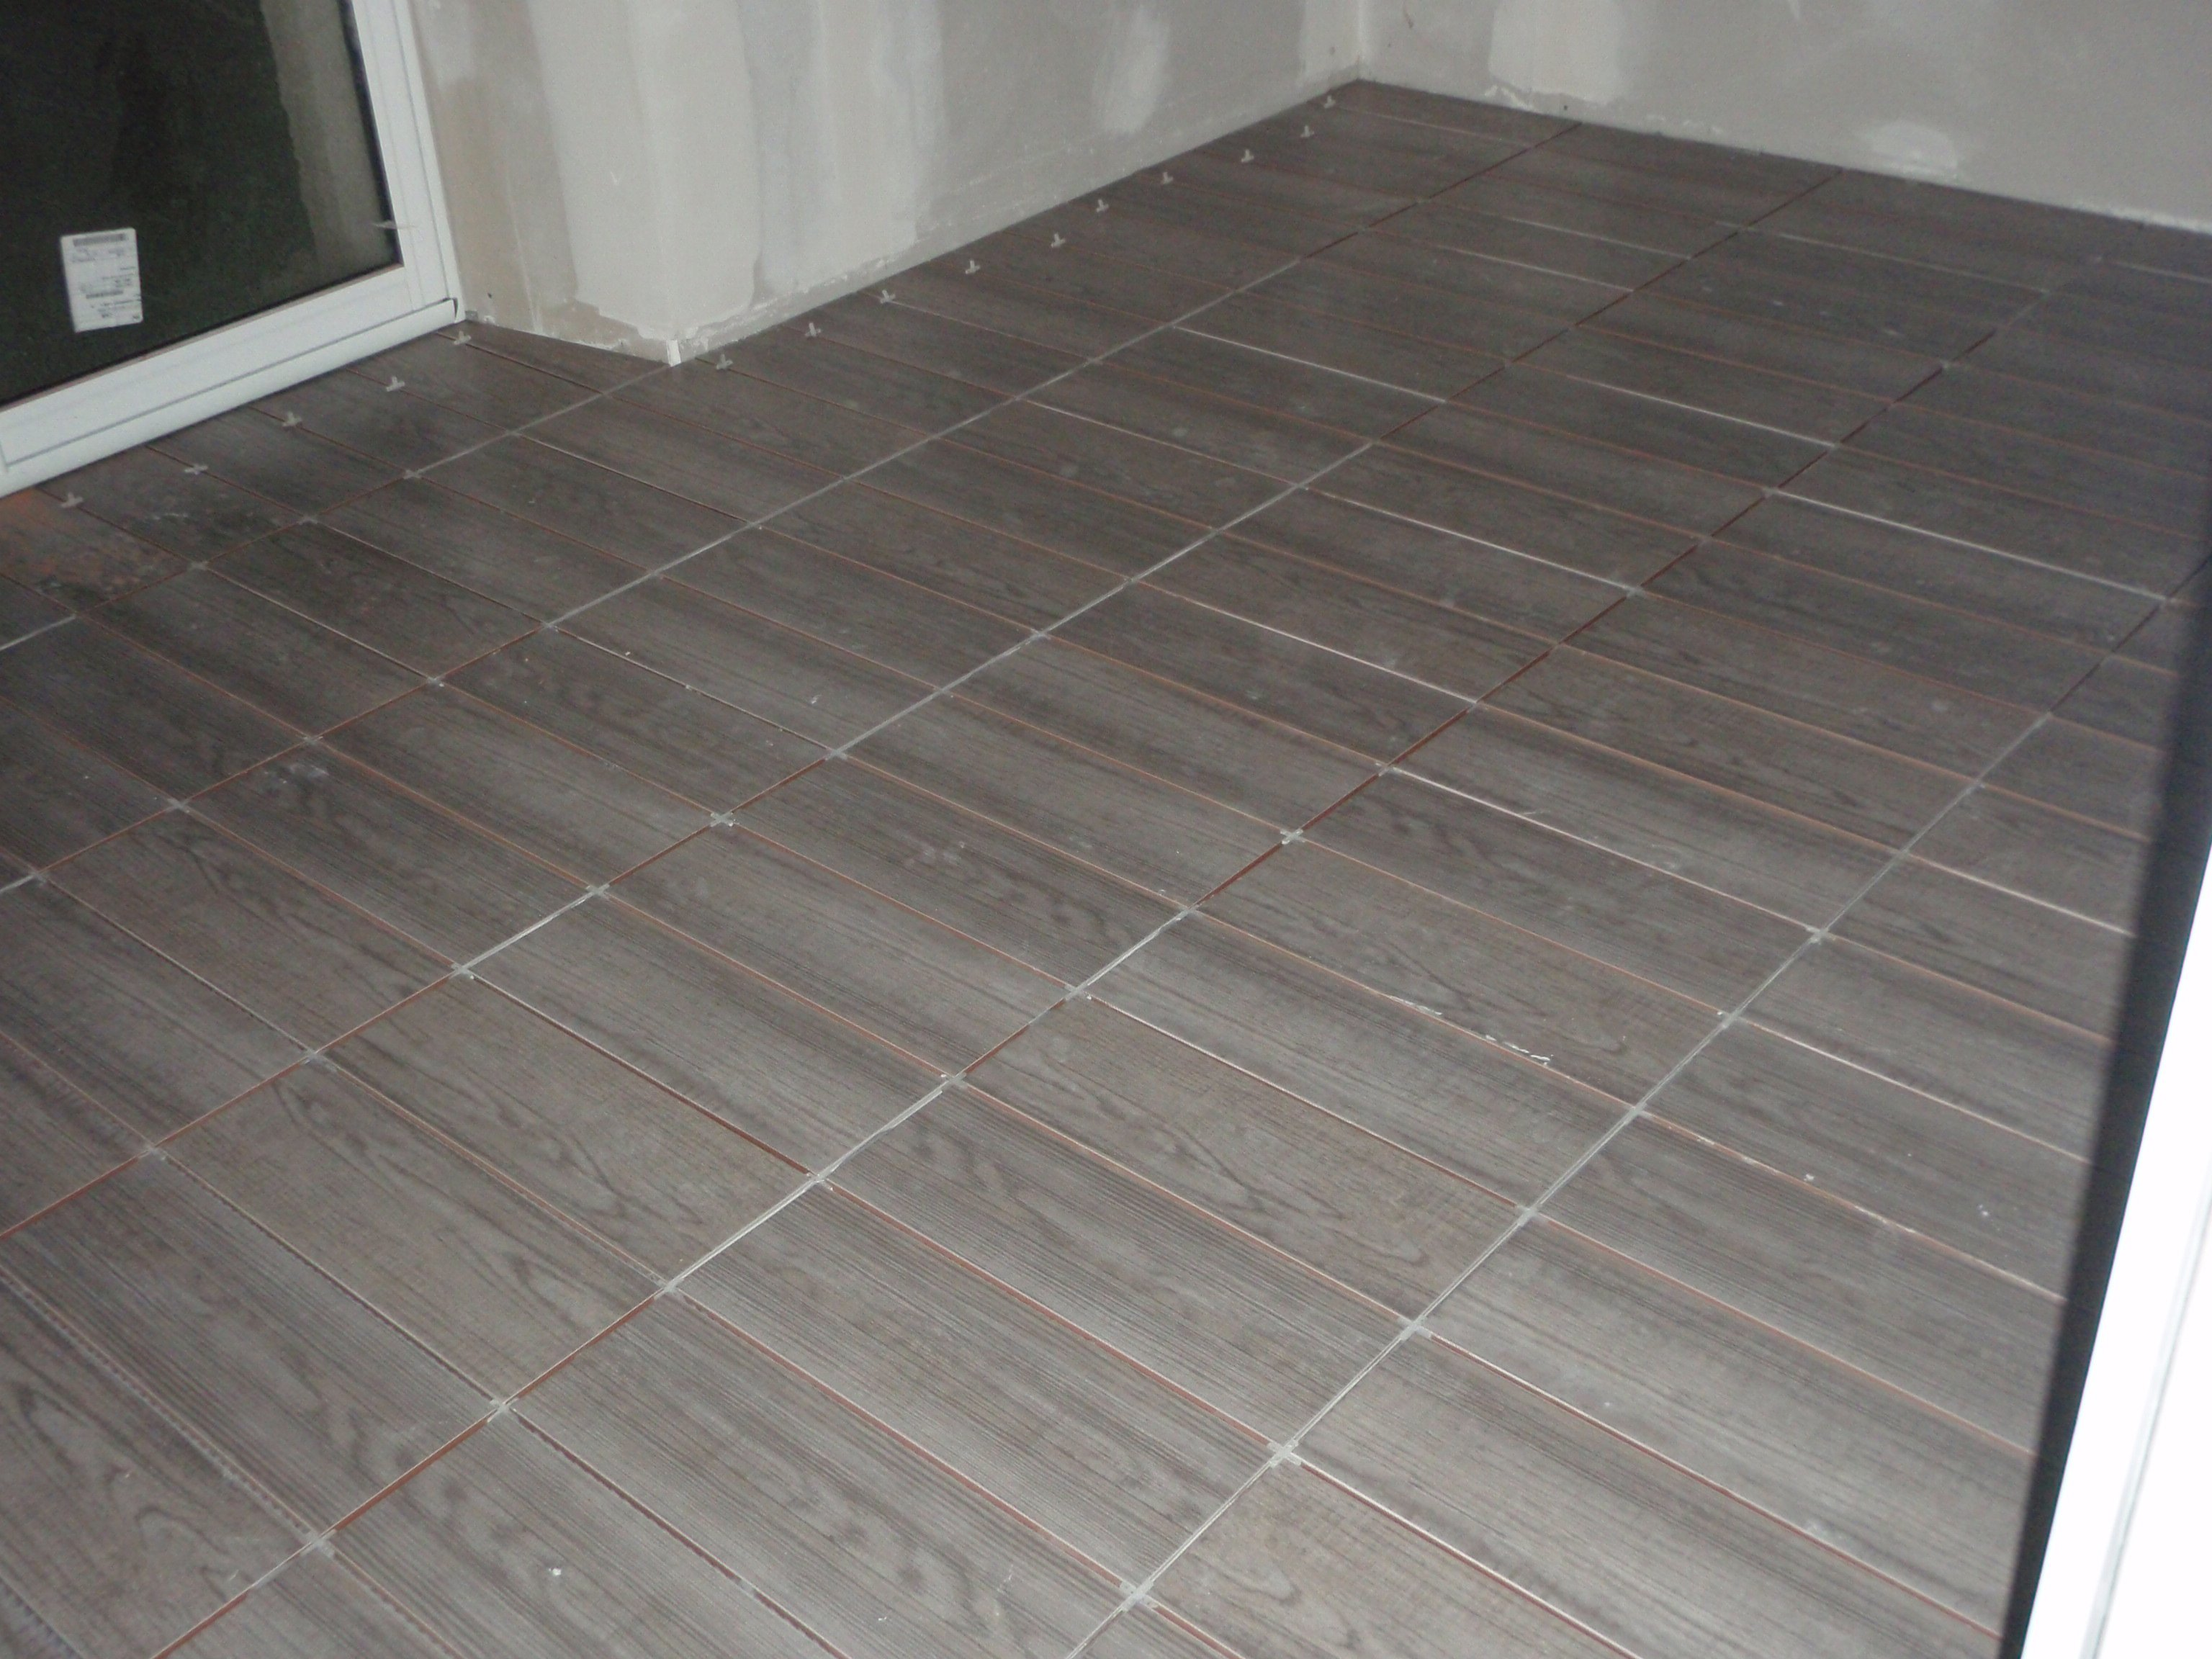 Colle carrelage pour mosaique prix travaux maison hyeres for Calcul colle carrelage